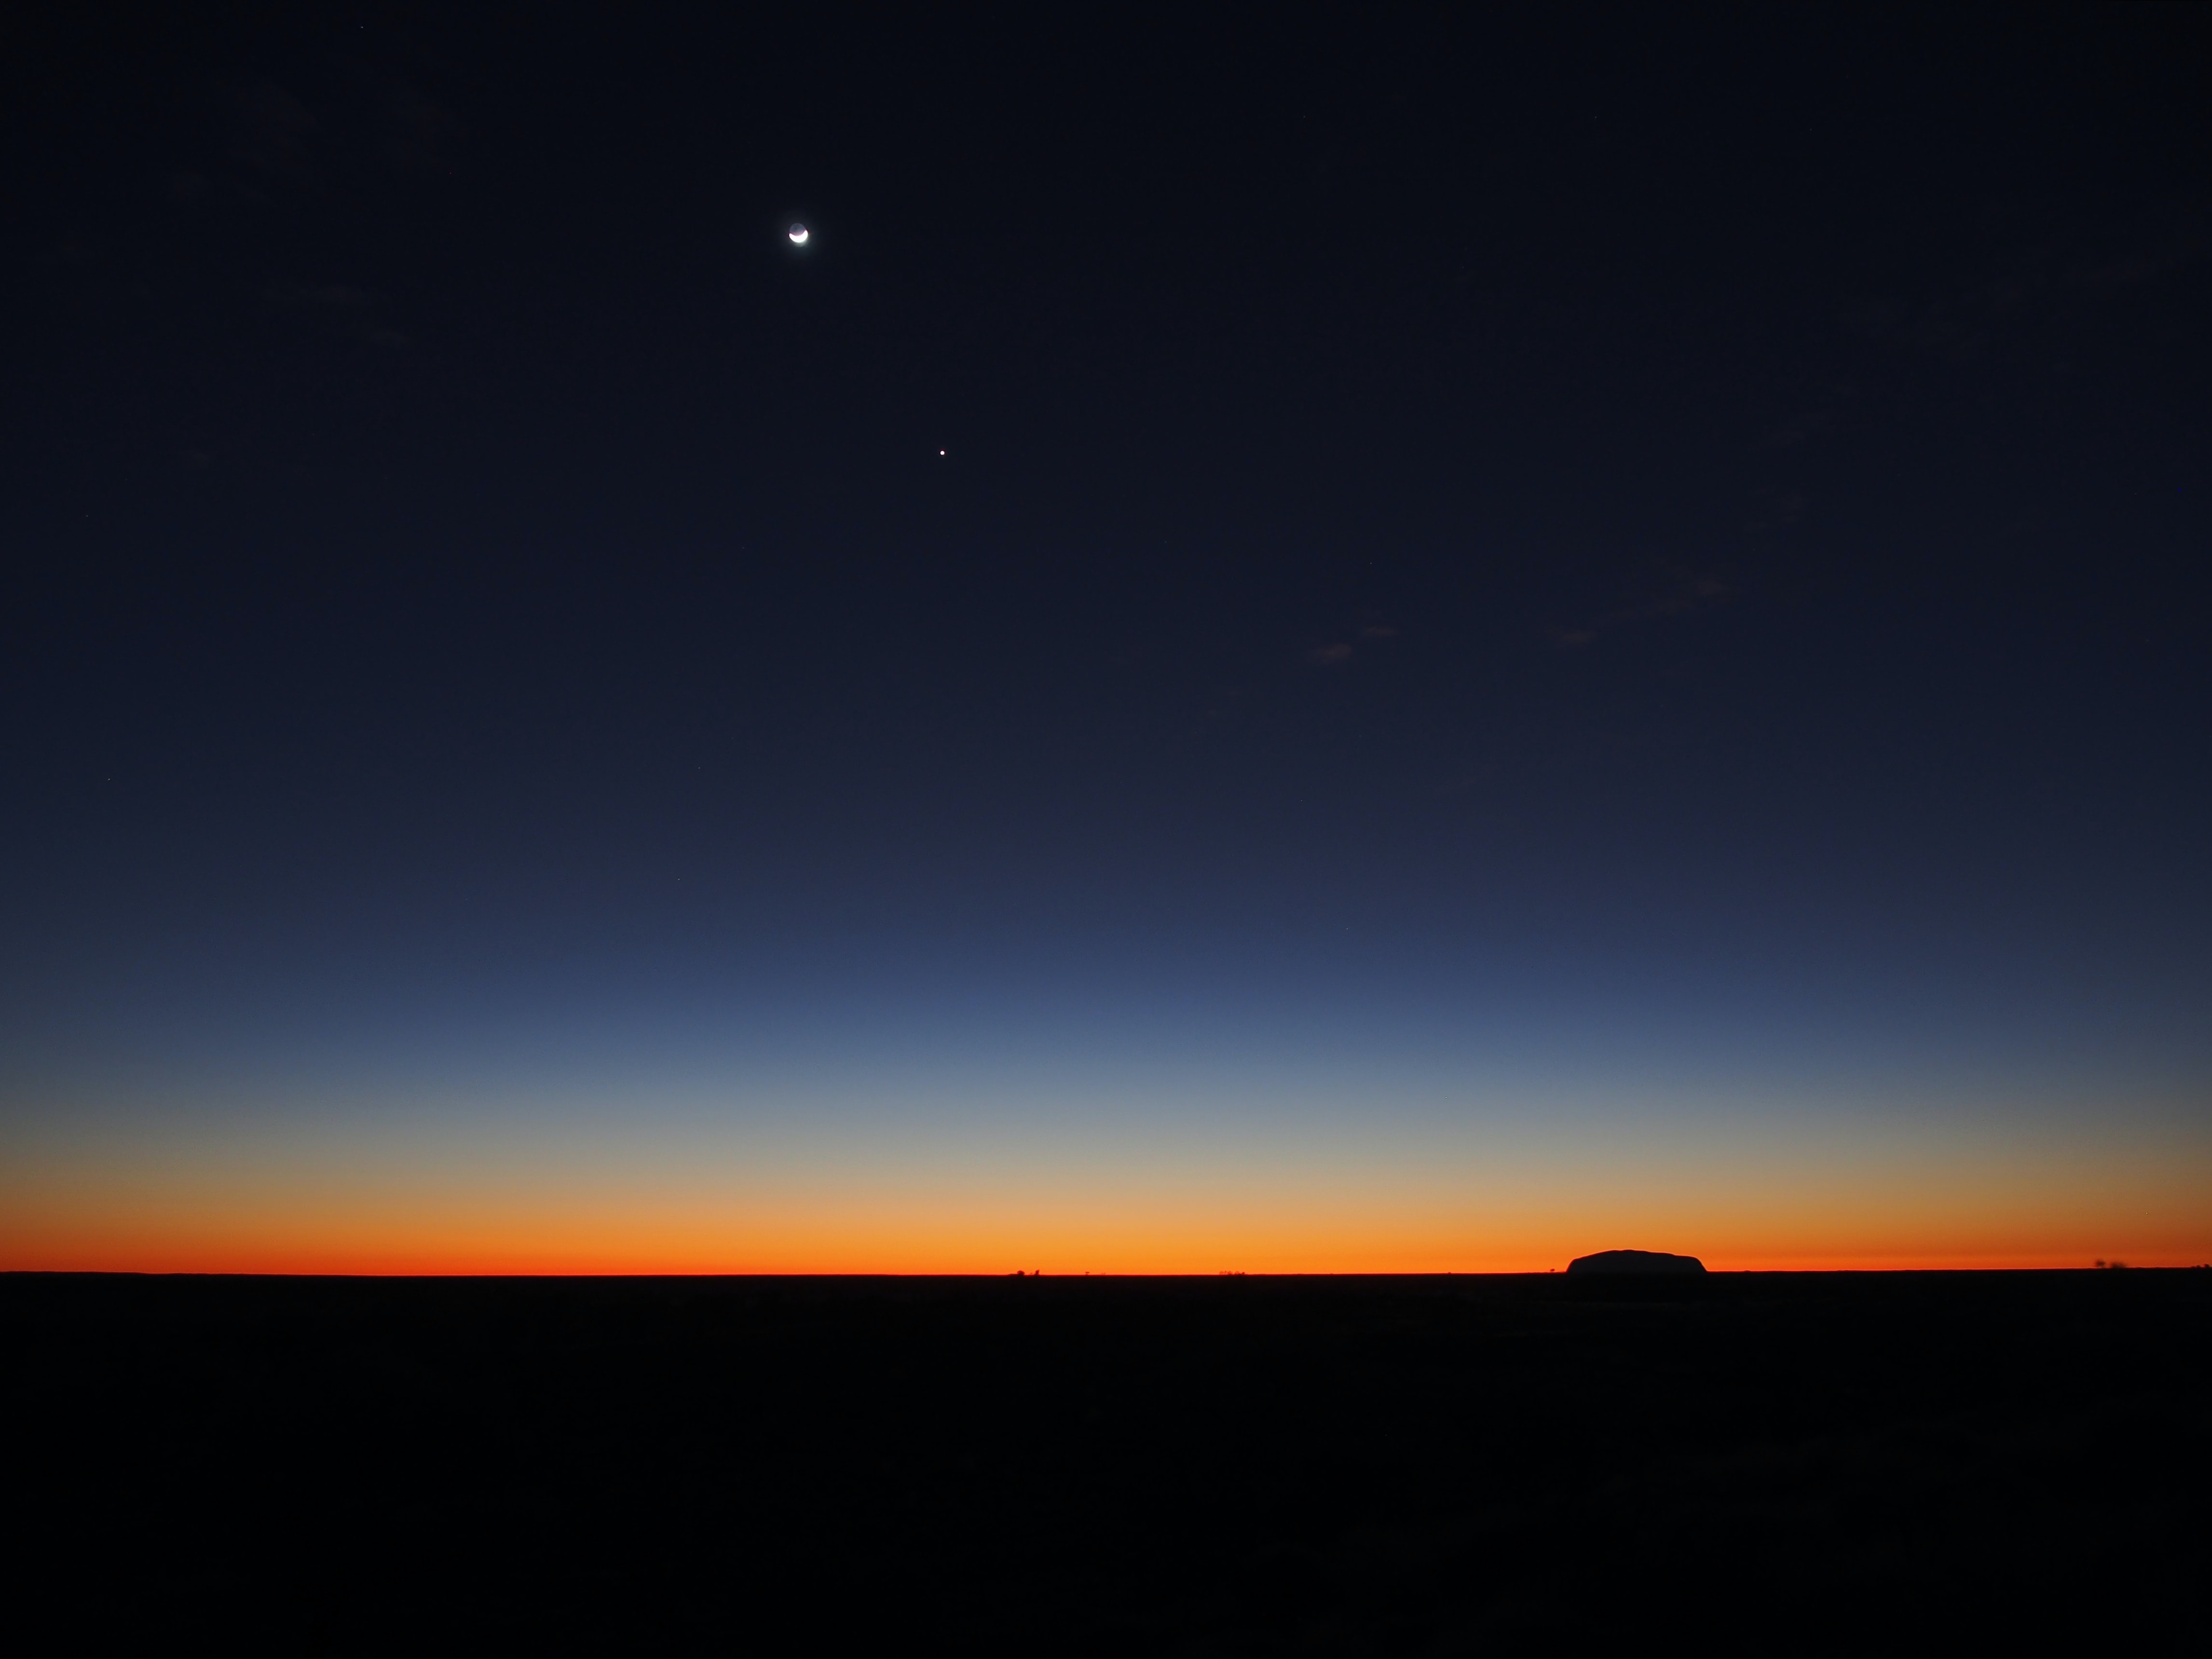 Uluru silhouetted against the moon with a lone star during twilight